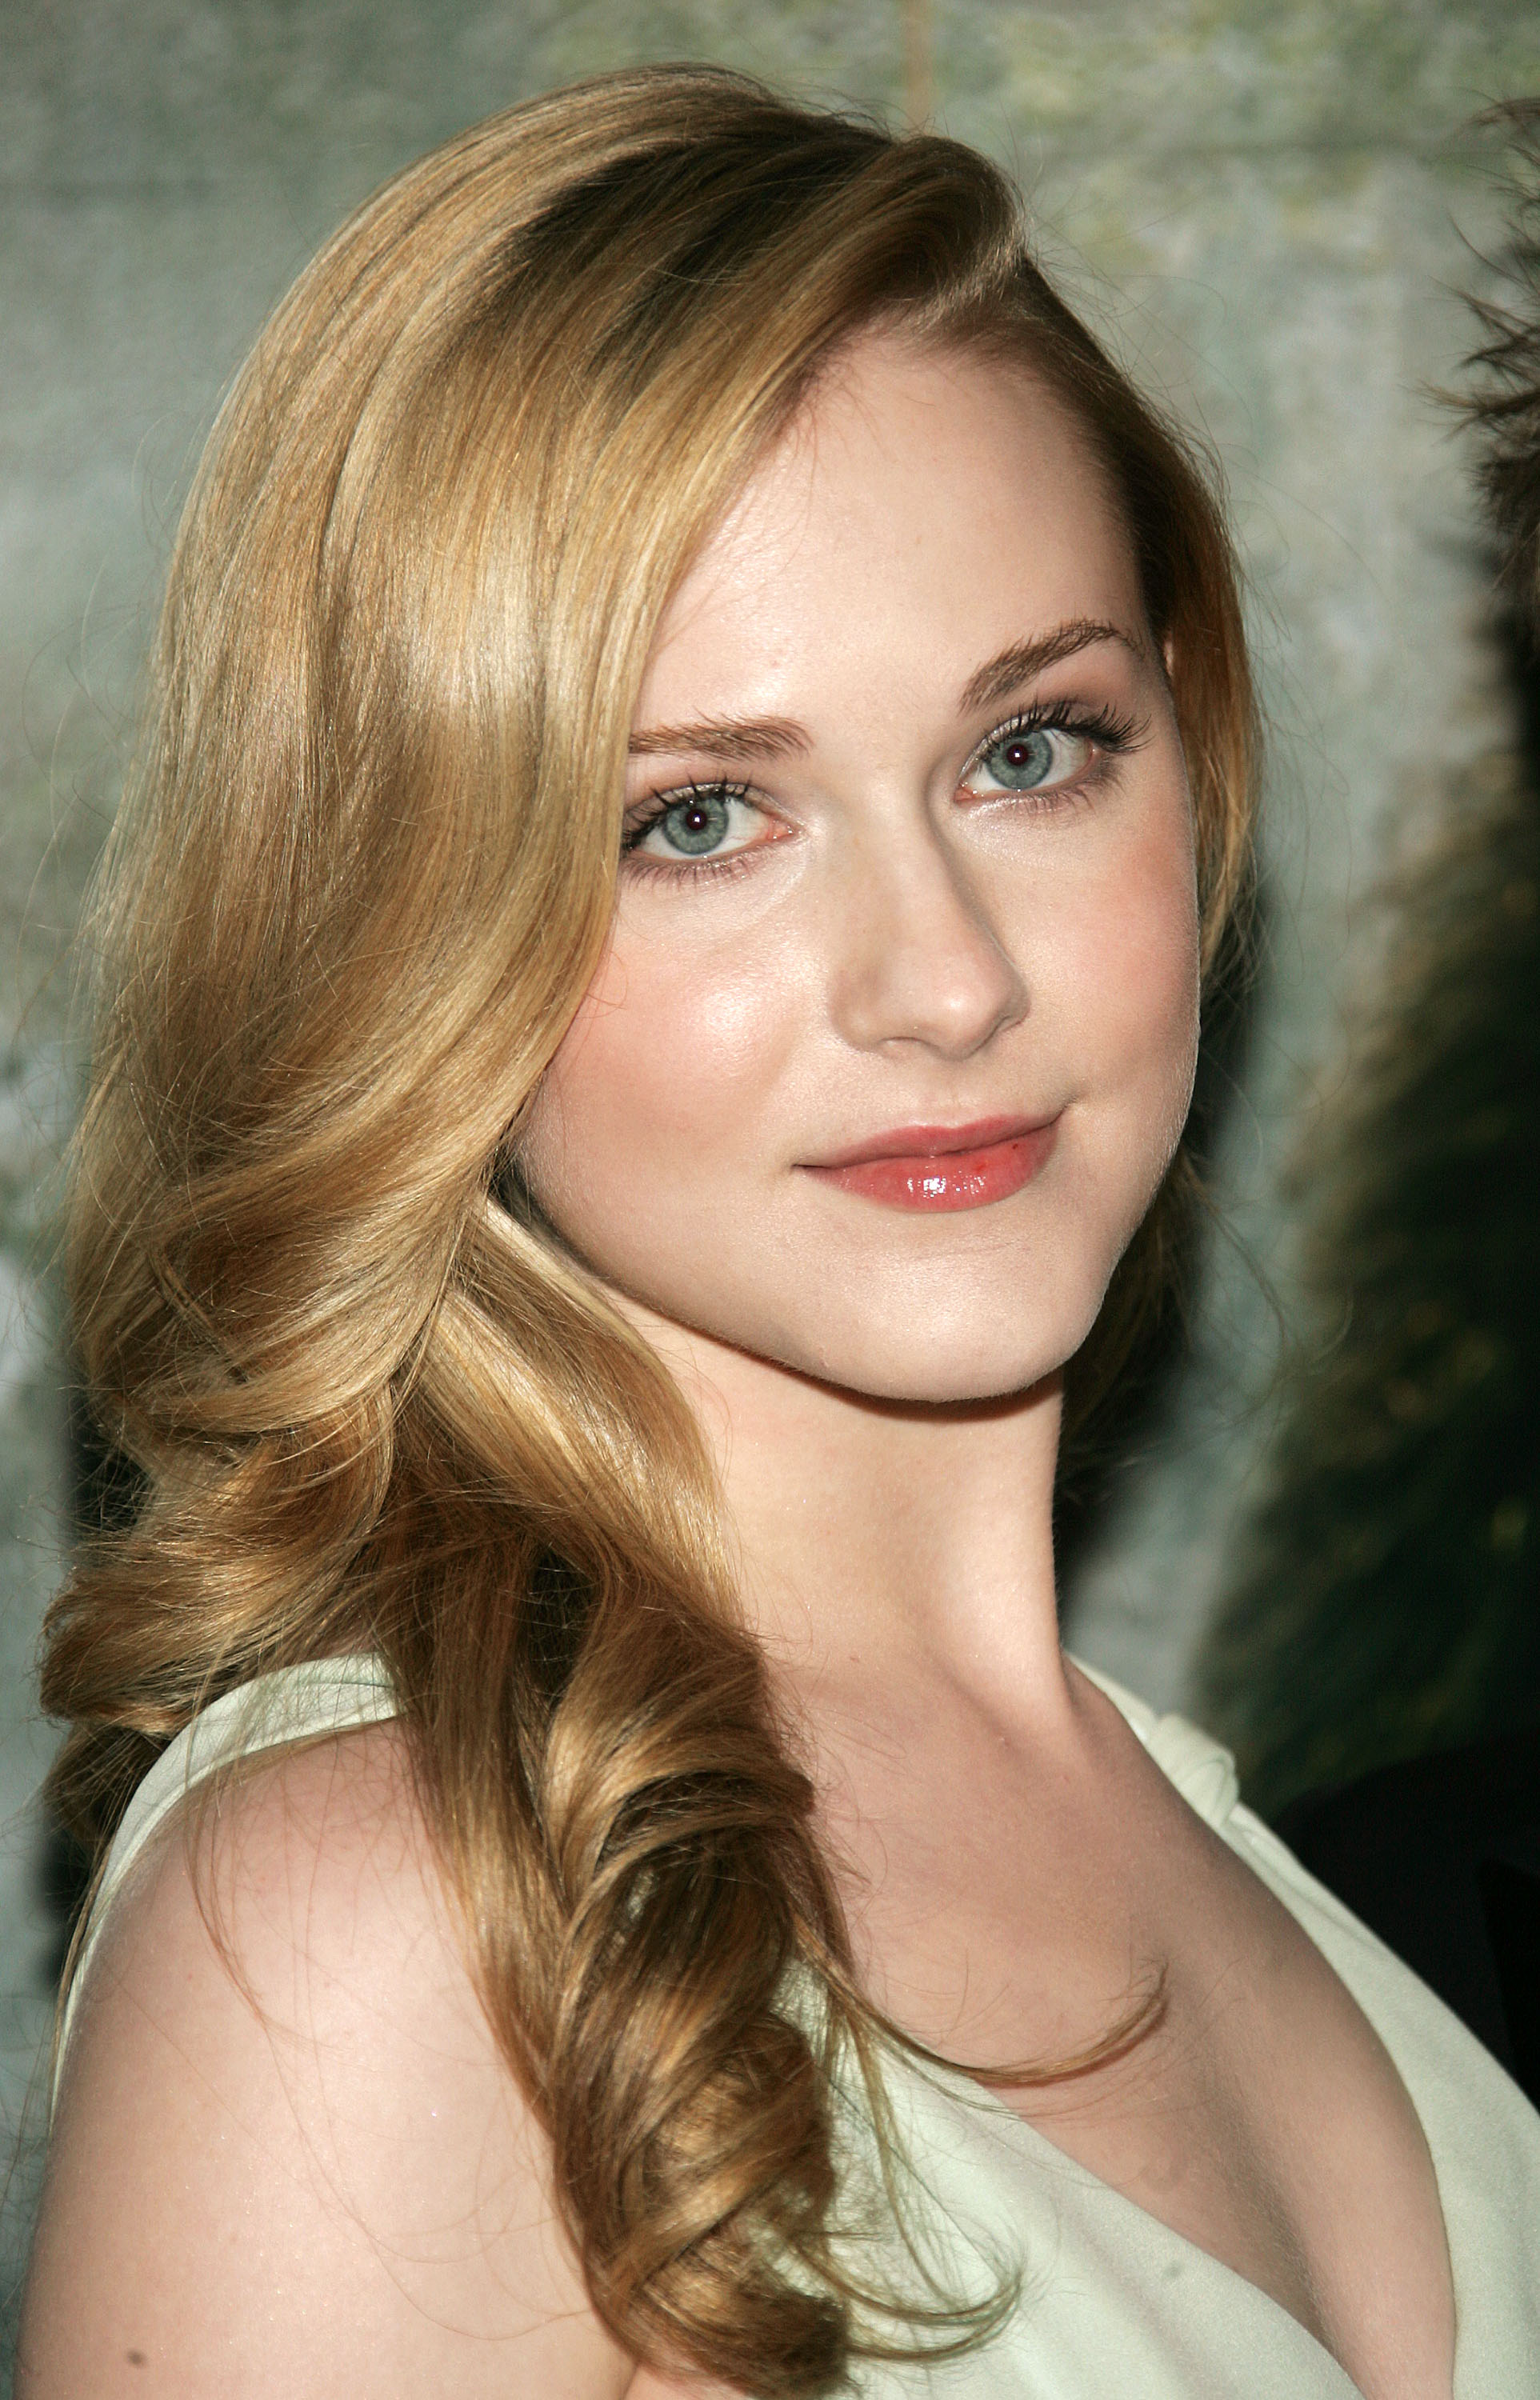 Evan Rachel Wood - West Wing Wiki - NBC, Martin Sheen ... Evan Rachel Wood Imdb